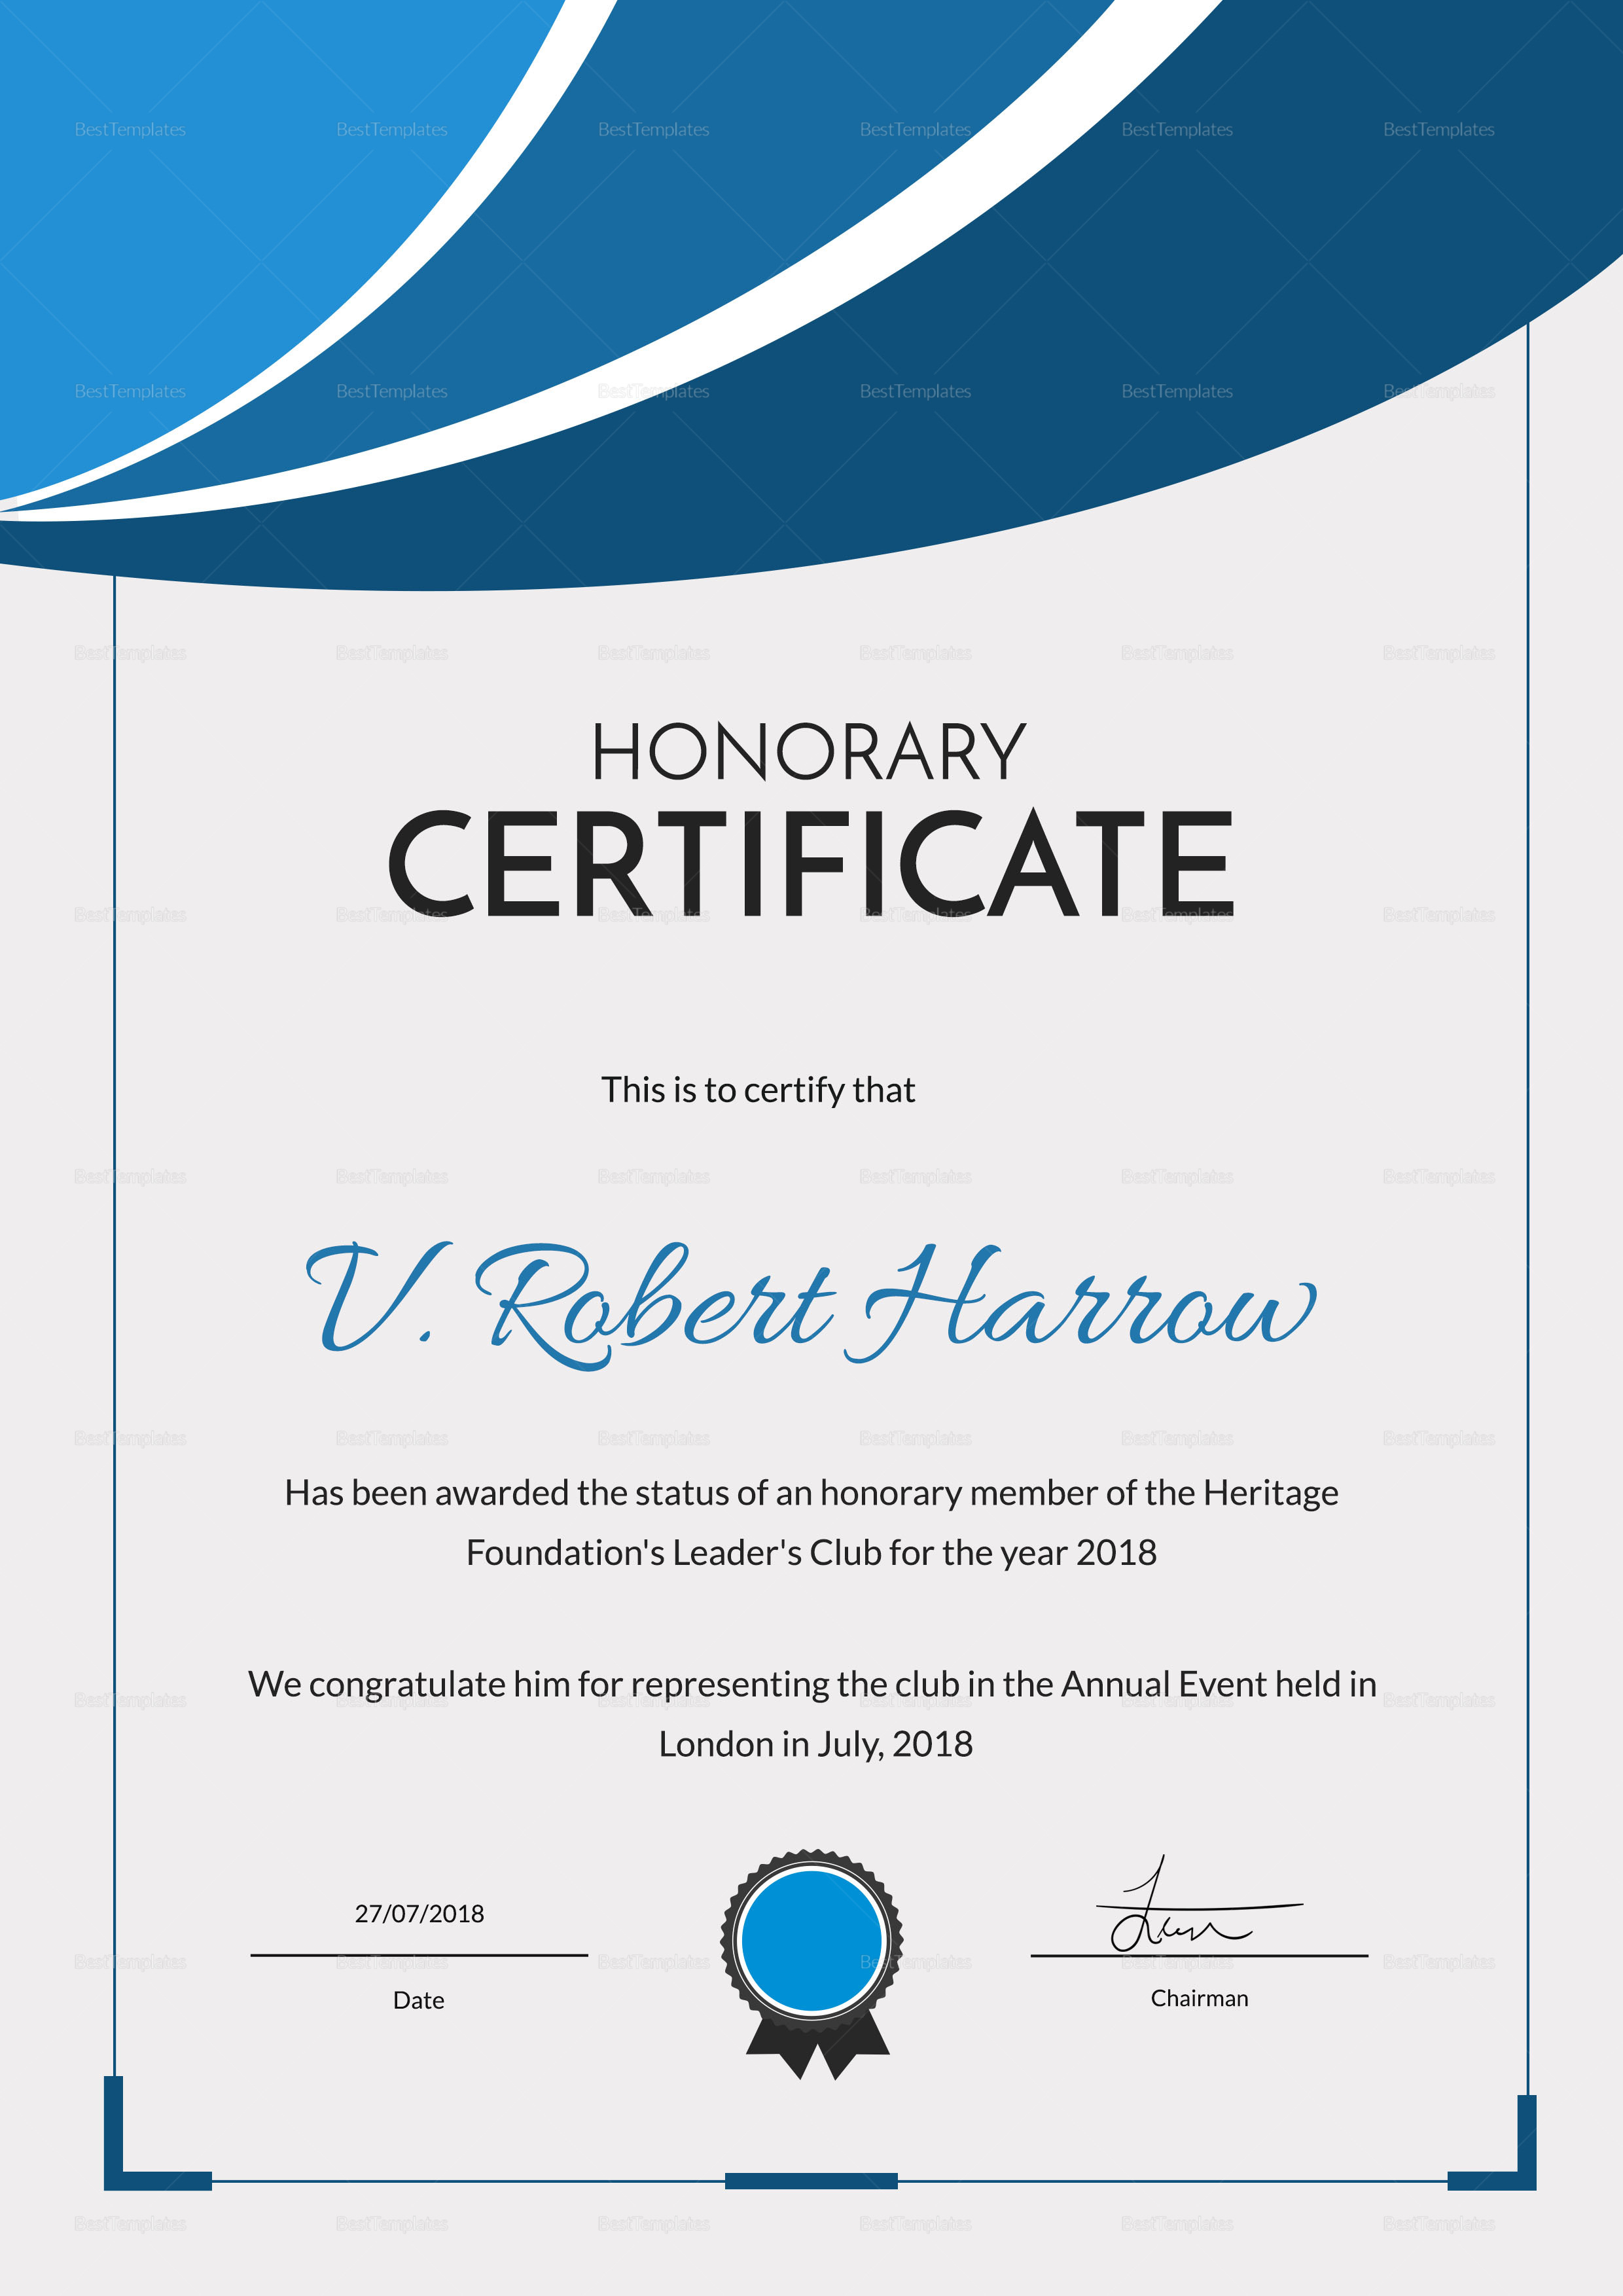 Certificate of Honorary Participation Template